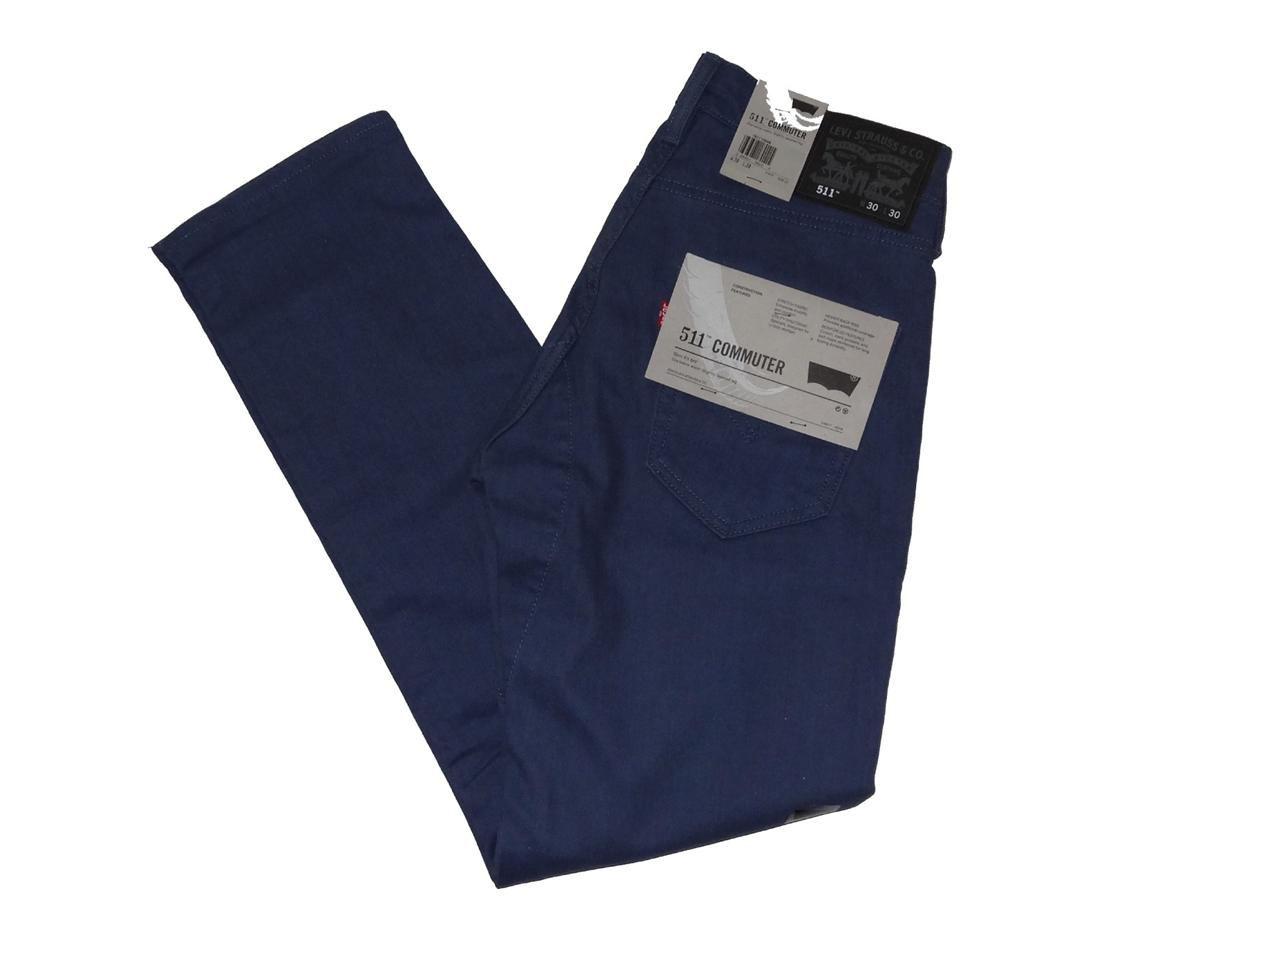 Levi's Men's 511 Skinny Commuter Pants With 4 Colors NWT 29 30 31 32 33 34 36 38